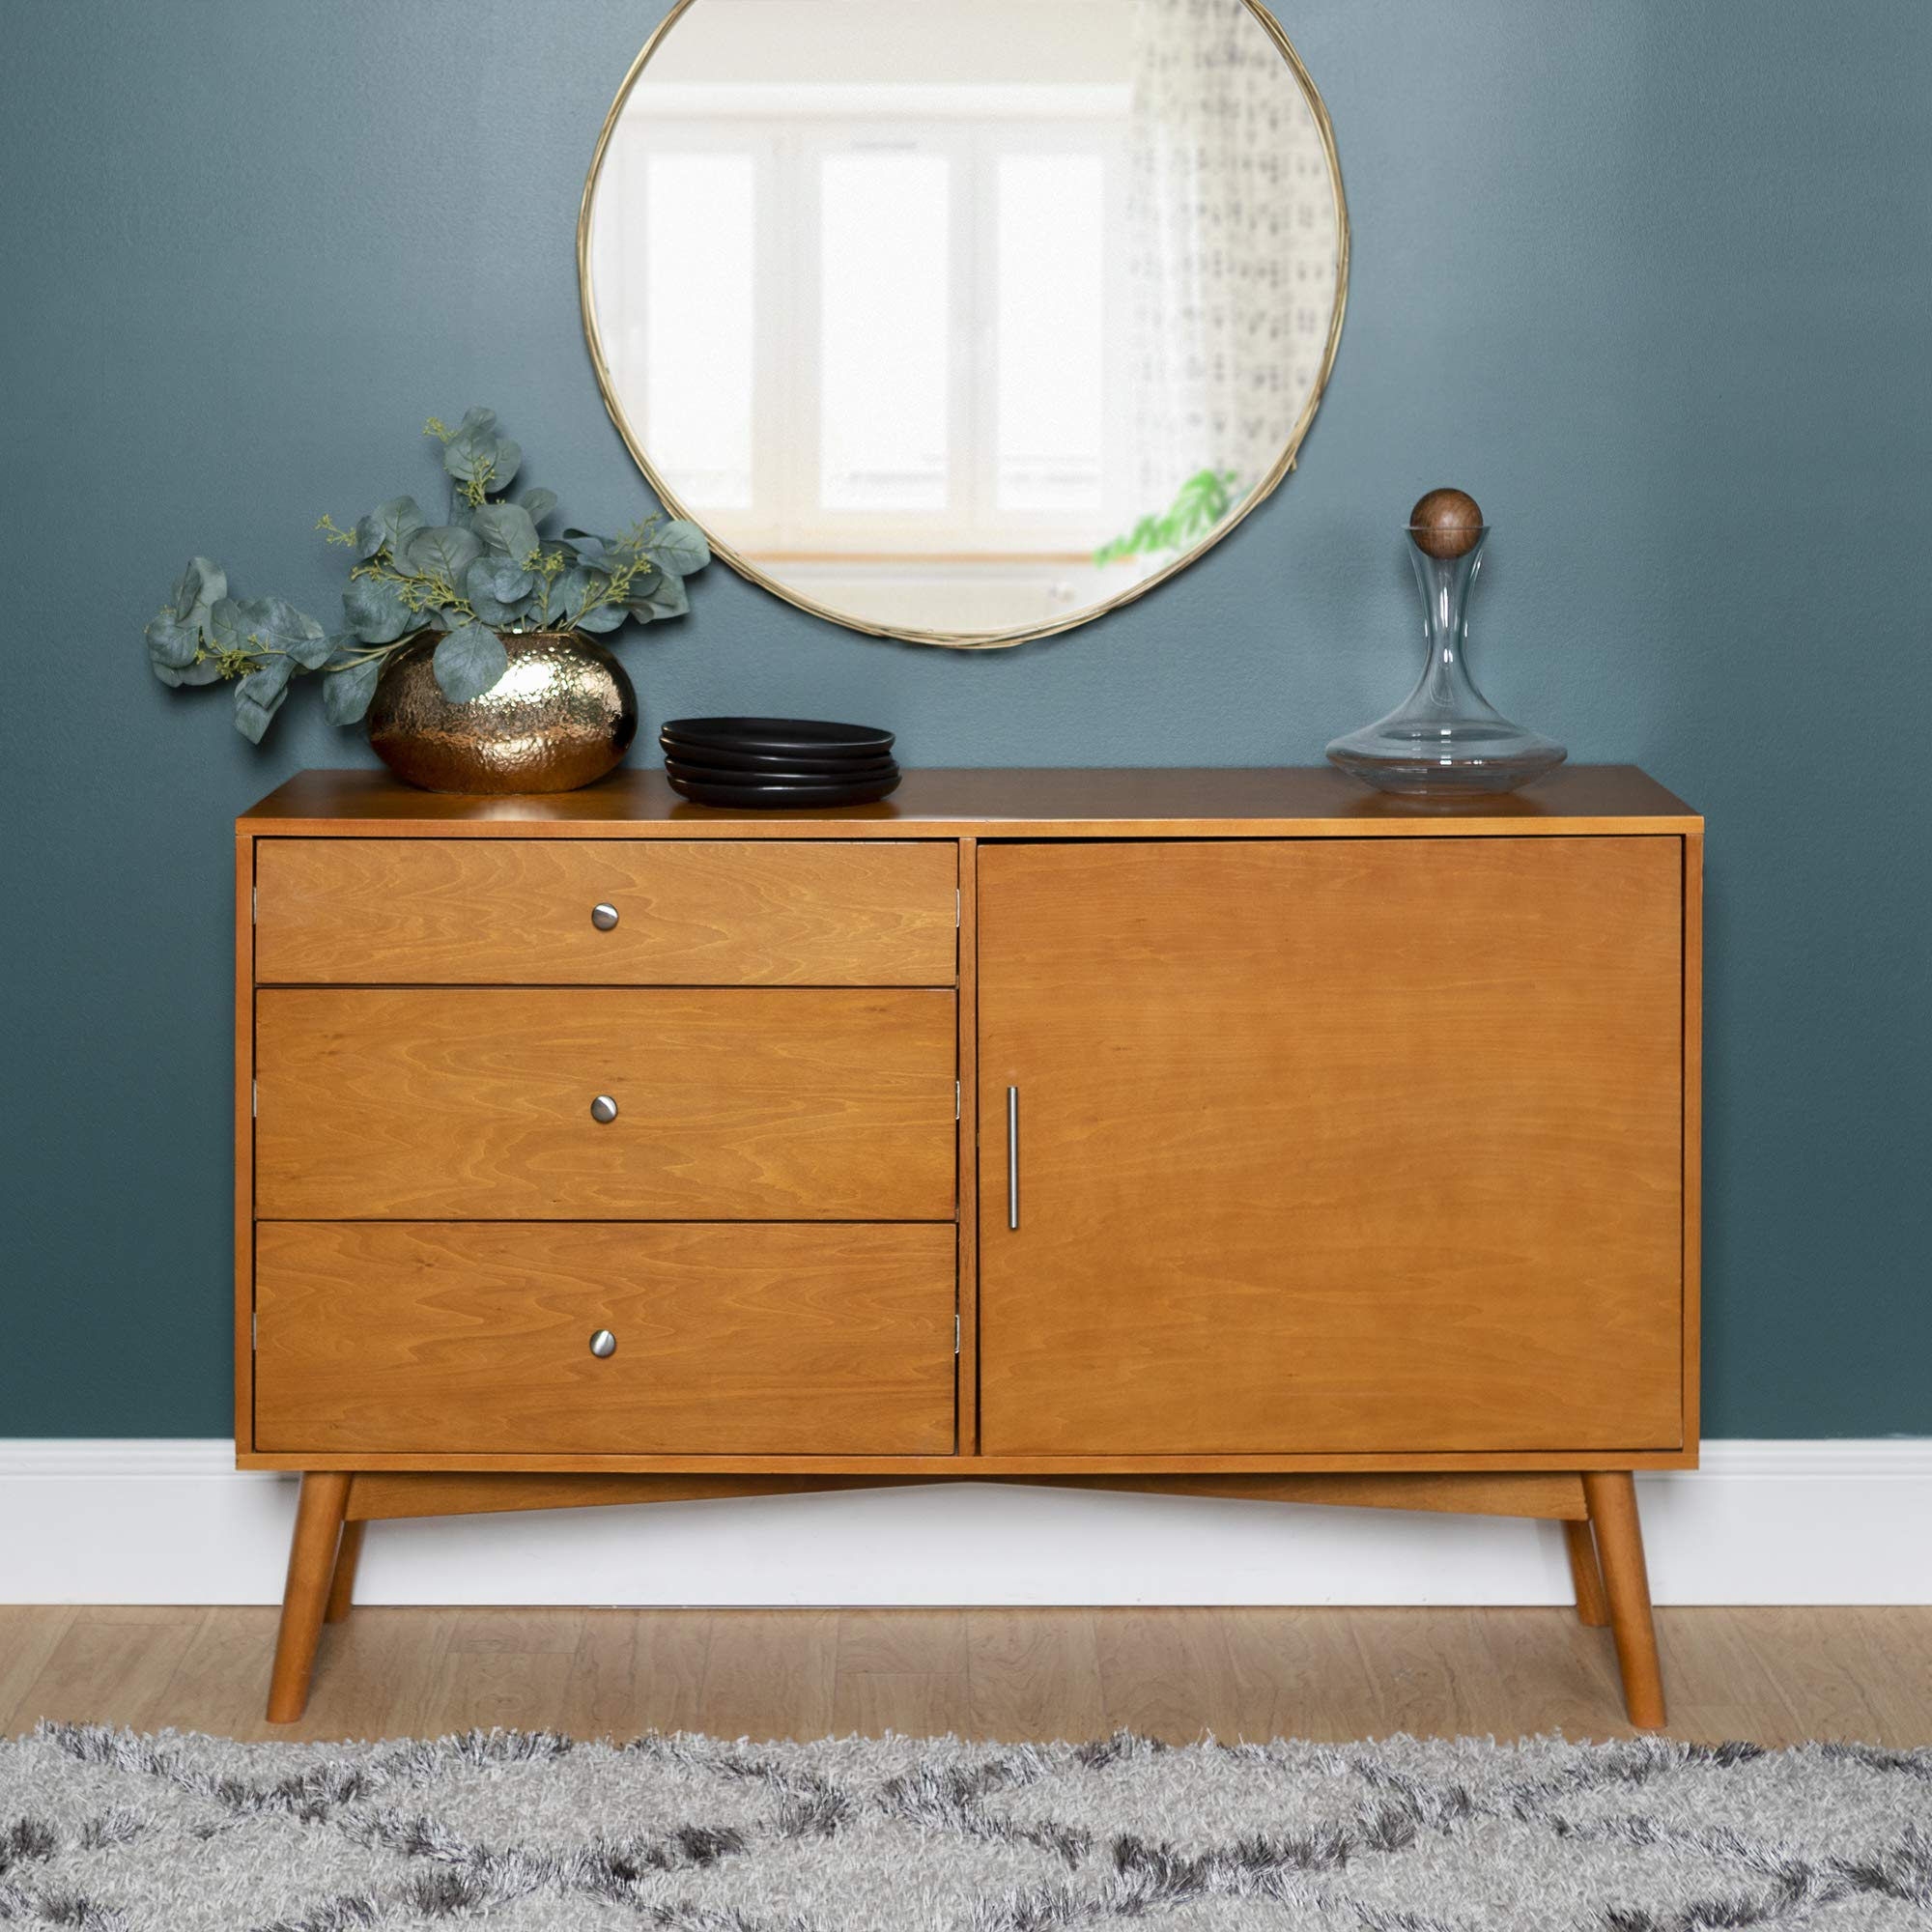 New Mid Century Modern Television Console-Acorn Finish by Home Accent Furnishings